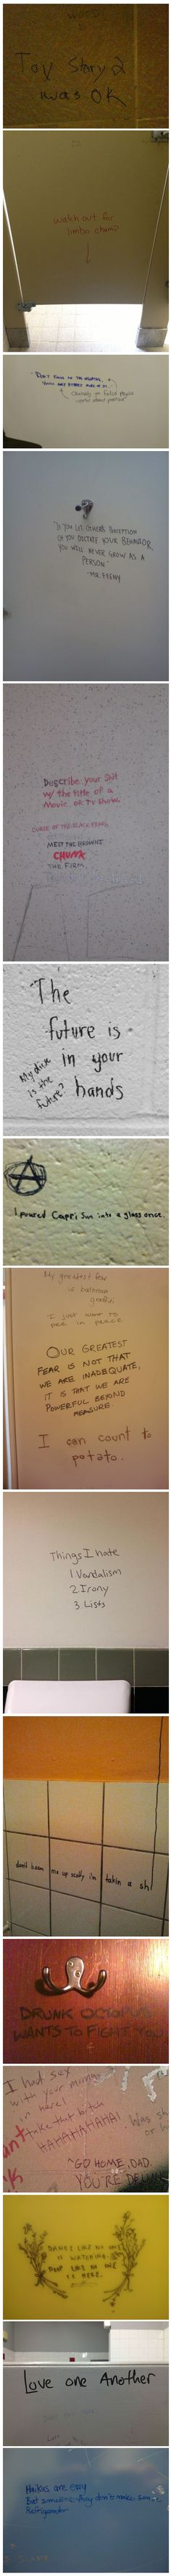 More Examples of Bathroom Stall Words of Wisdom | Mommy Has A Potty MouthMommy Has A Potty Mouth